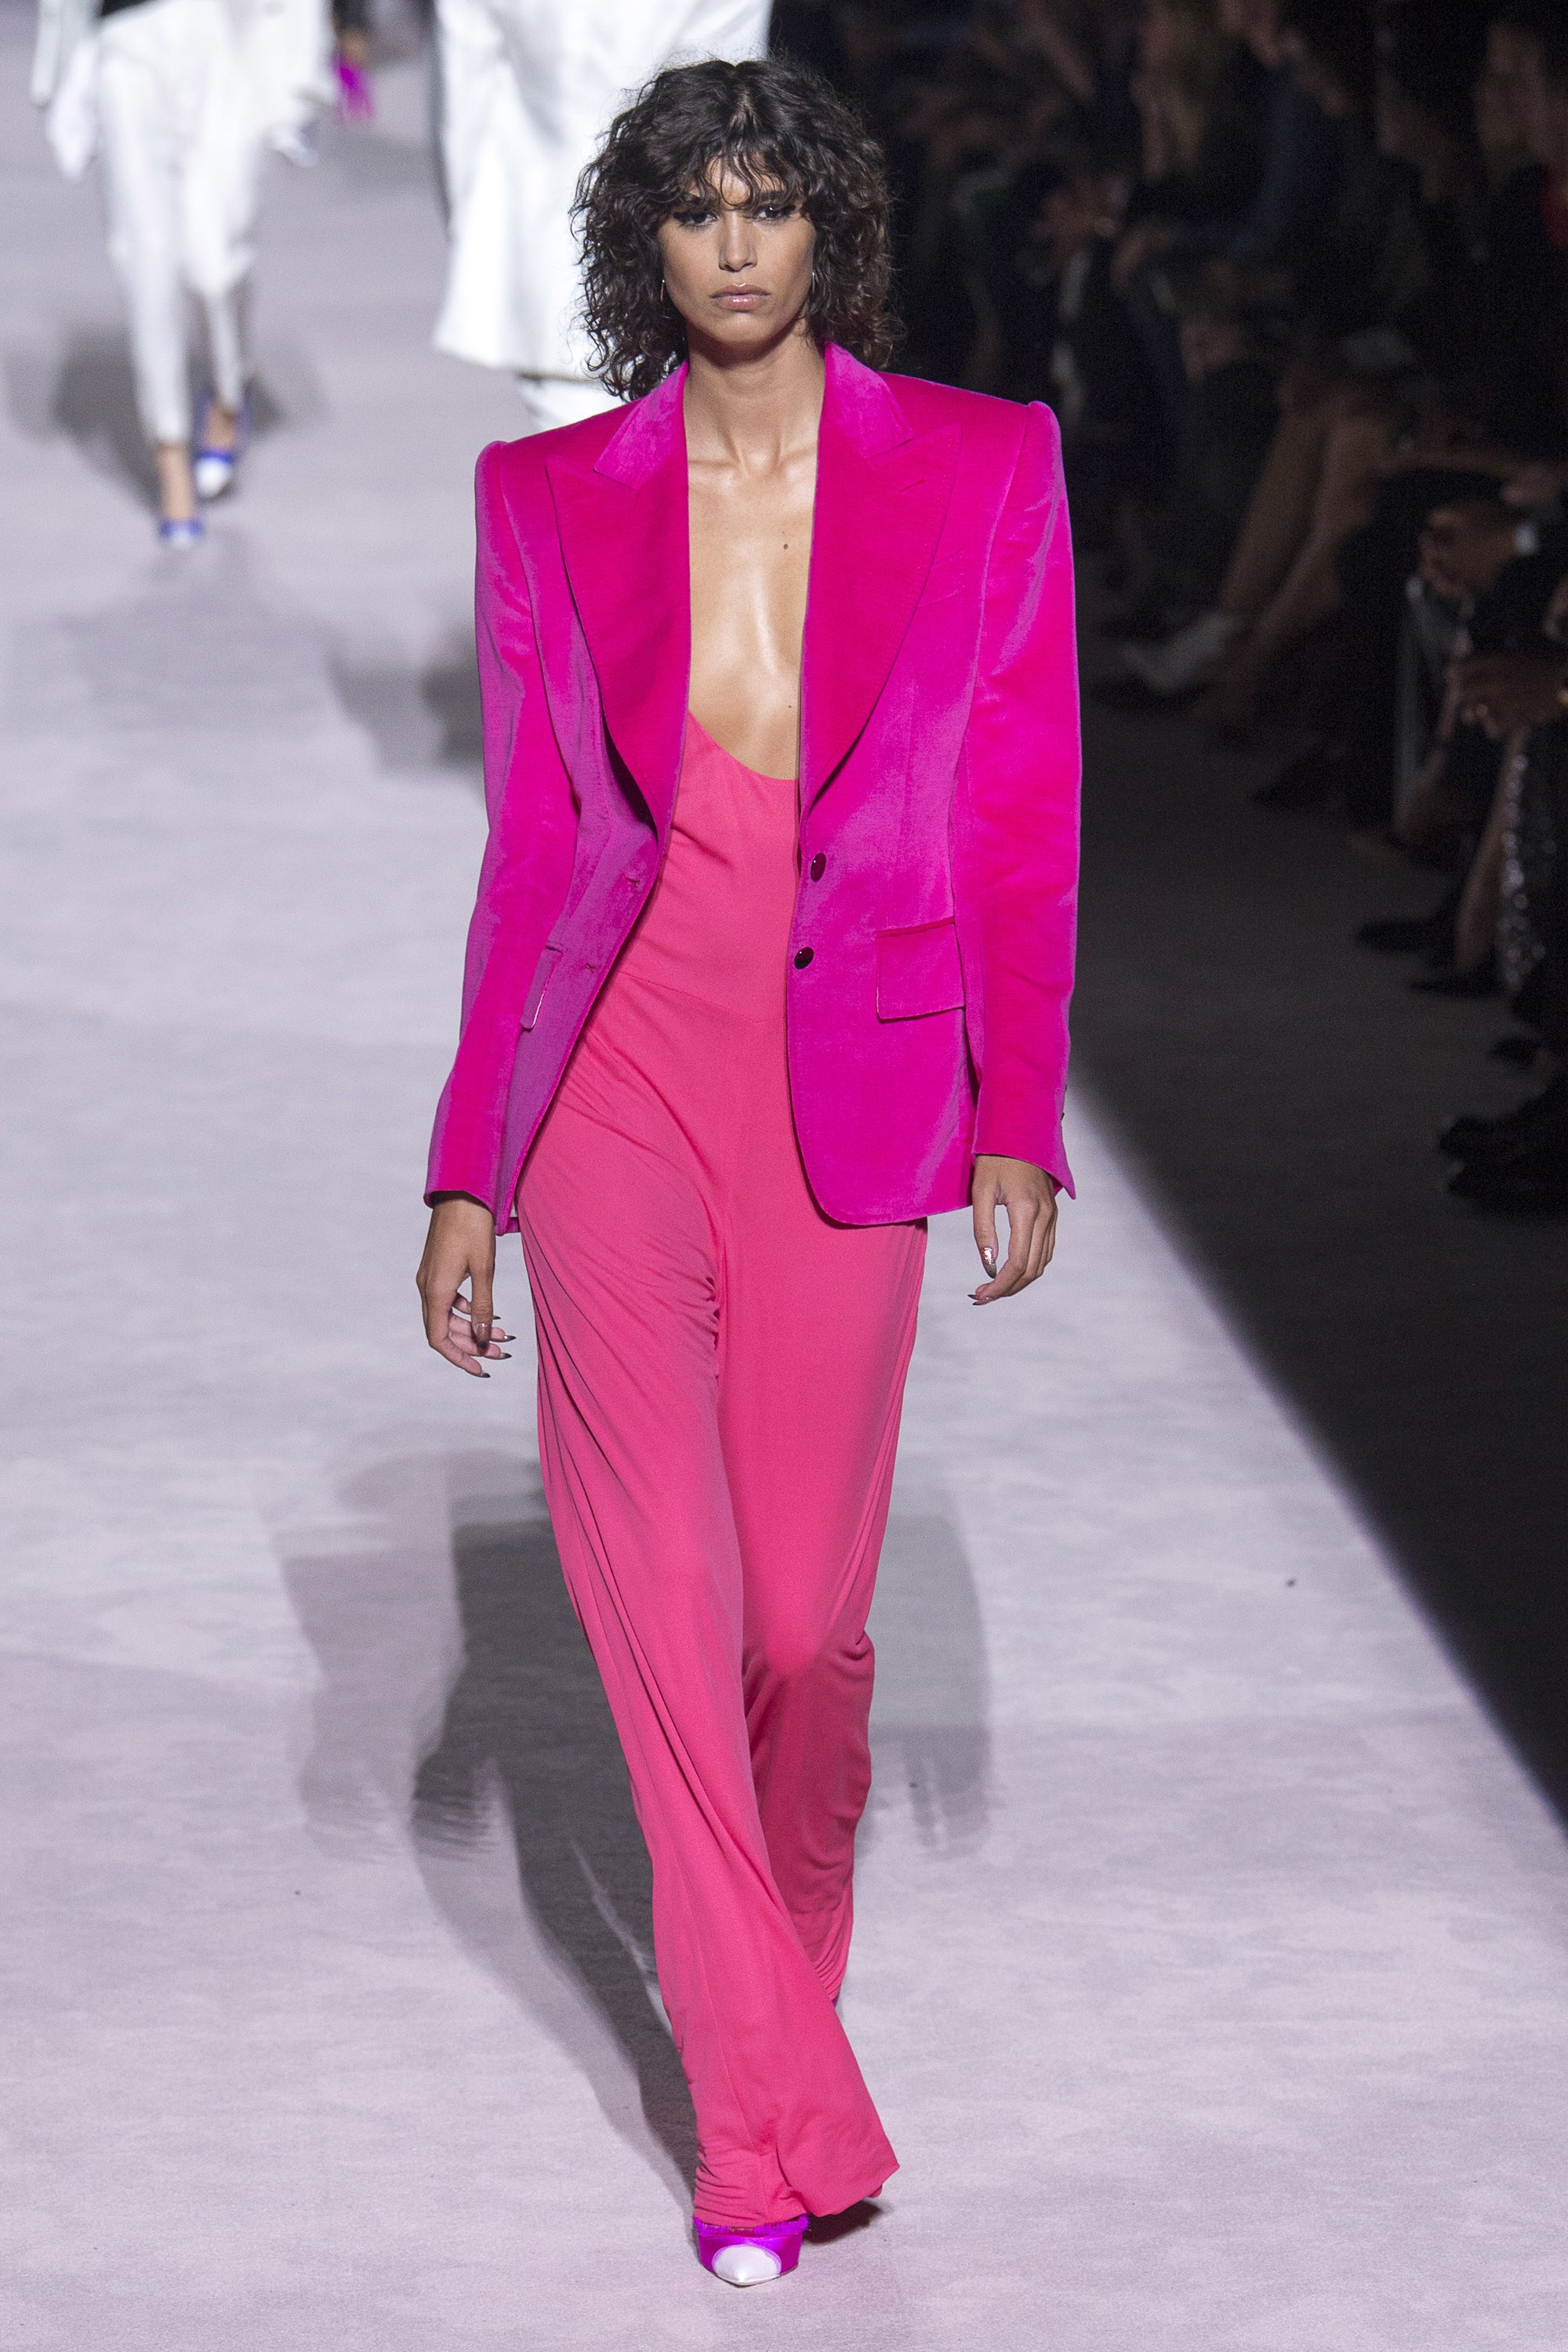 How to style a jumpsuit - Tom Ford Spring 2018 Ready-to-Wear - Model Mica Arganaraz - Source Photo by Yannis Vlamos, Indigital.tv via Vogue - blazers with jumpsuits - how to wear a jumpsuit - jackets with jumpsuits